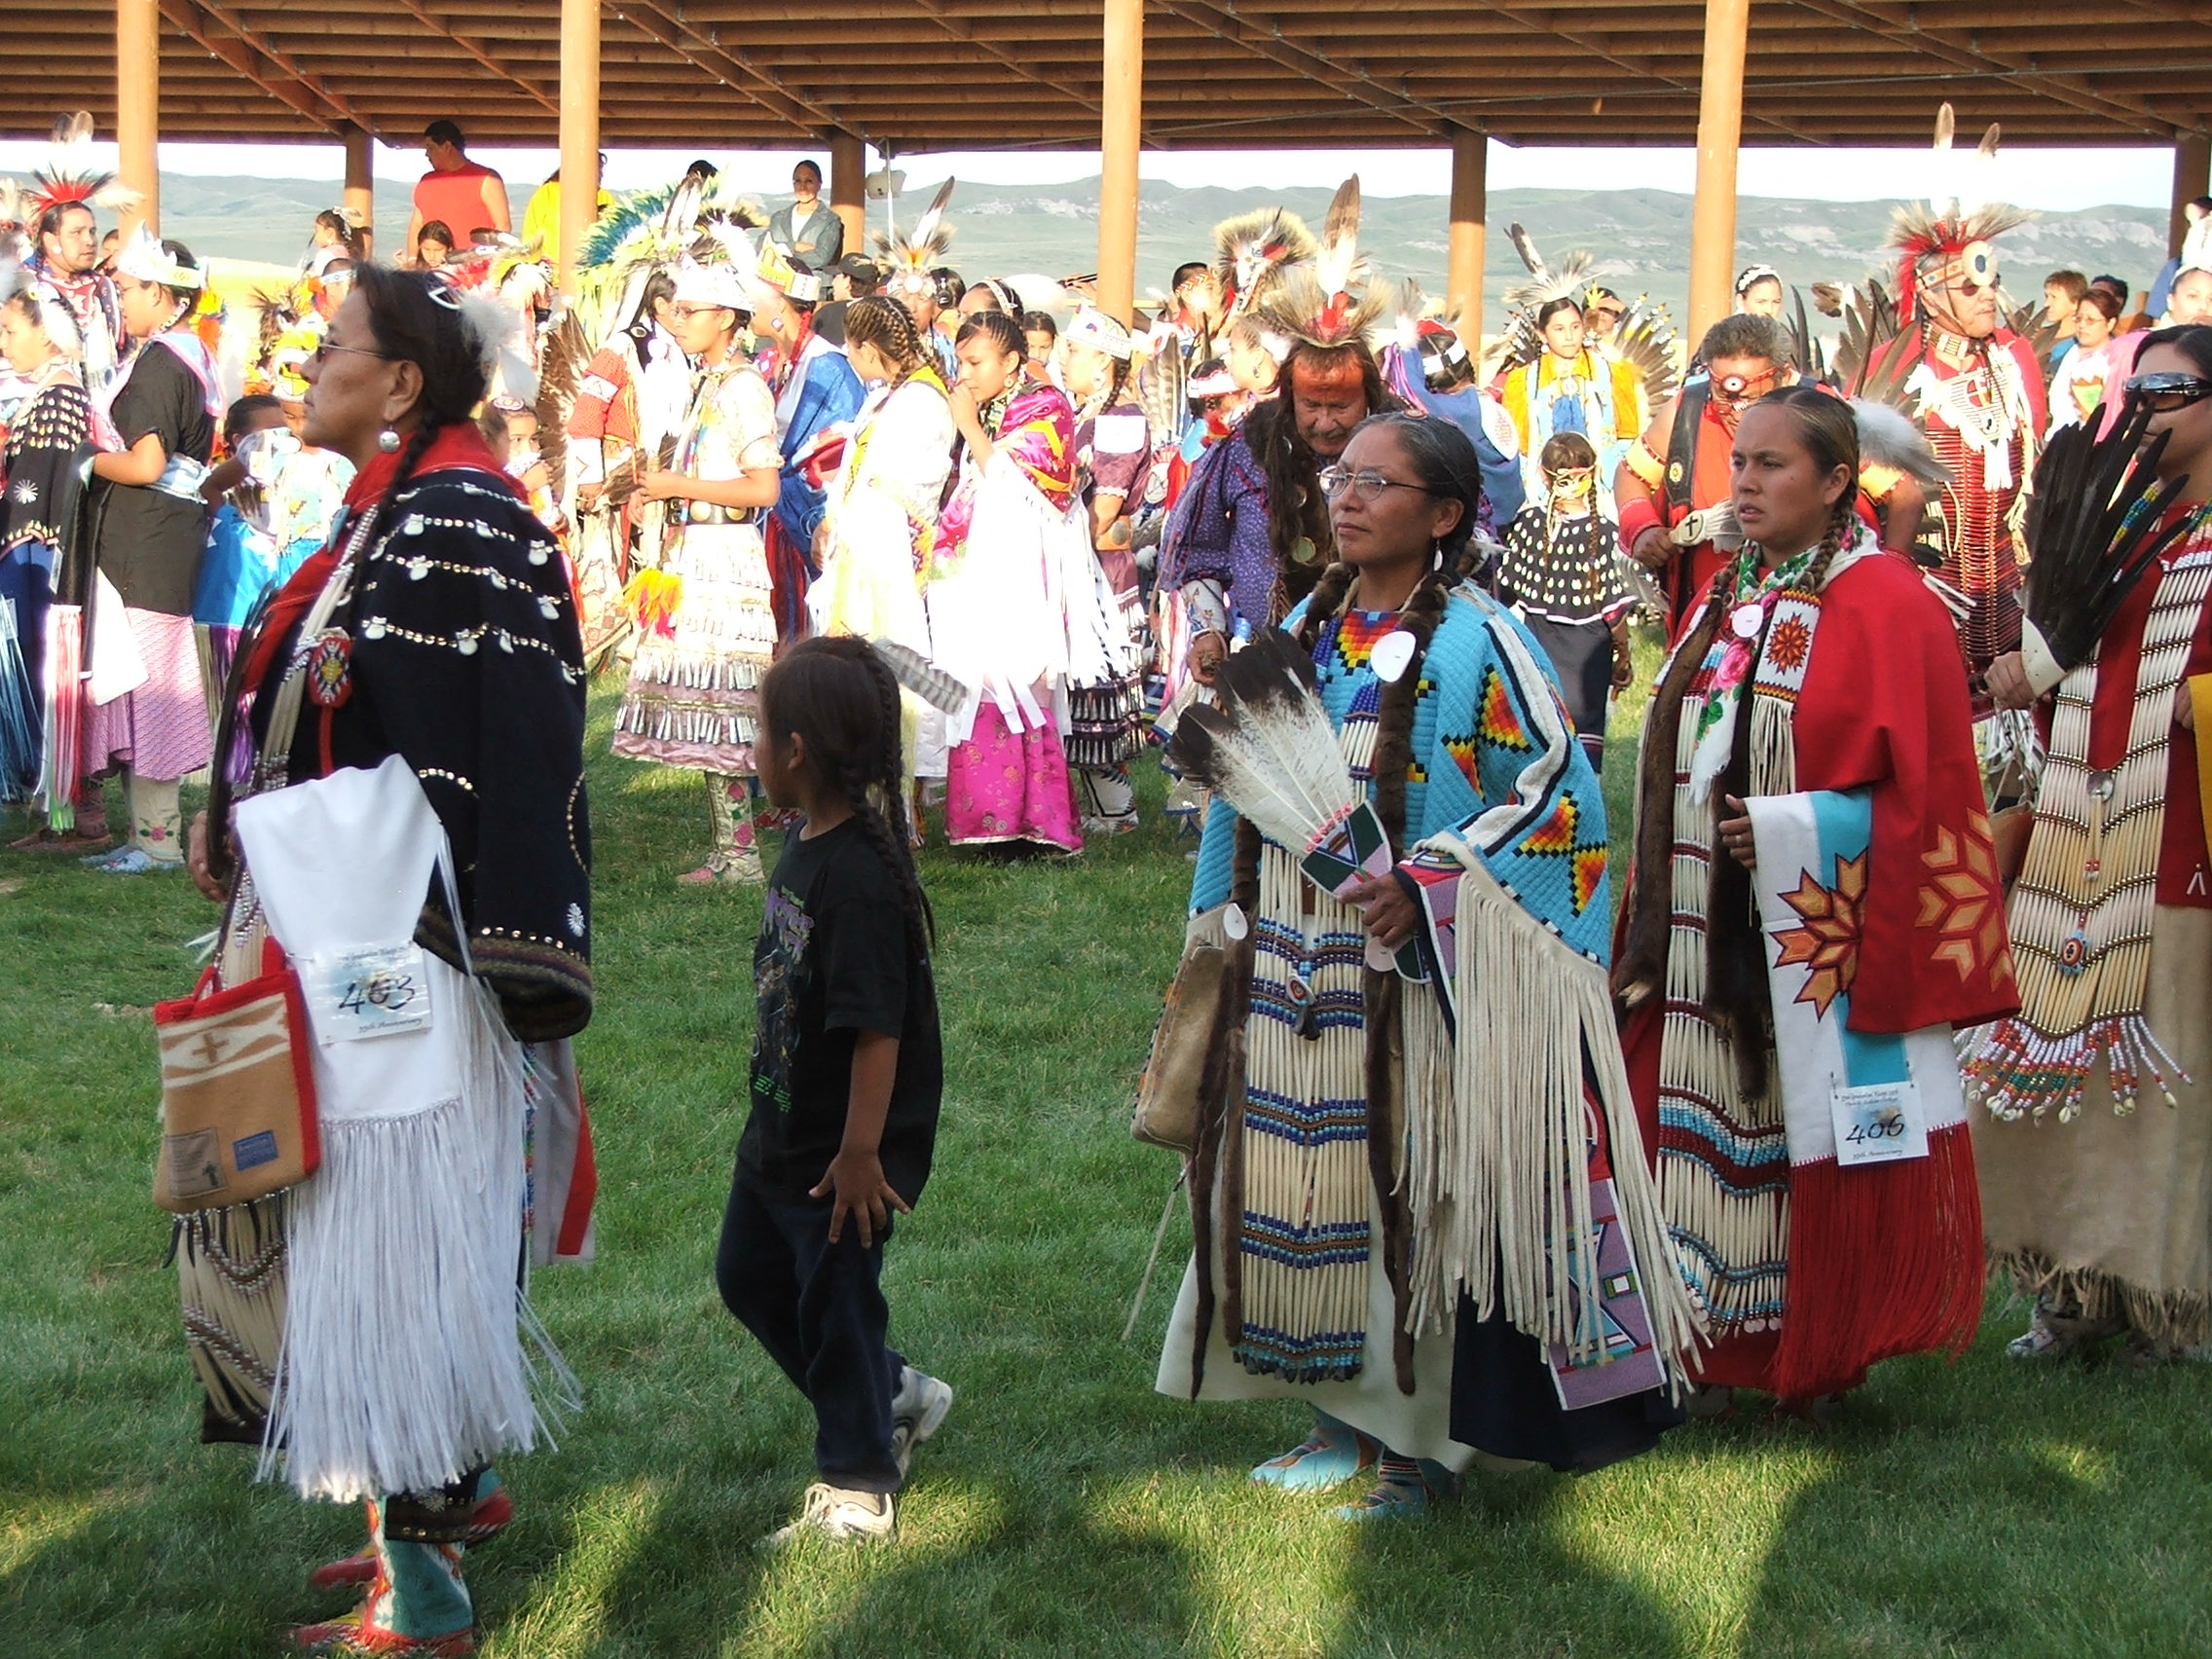 Dean Parisian: The answers to problems at Pine Ridge must come from Pine Ridge